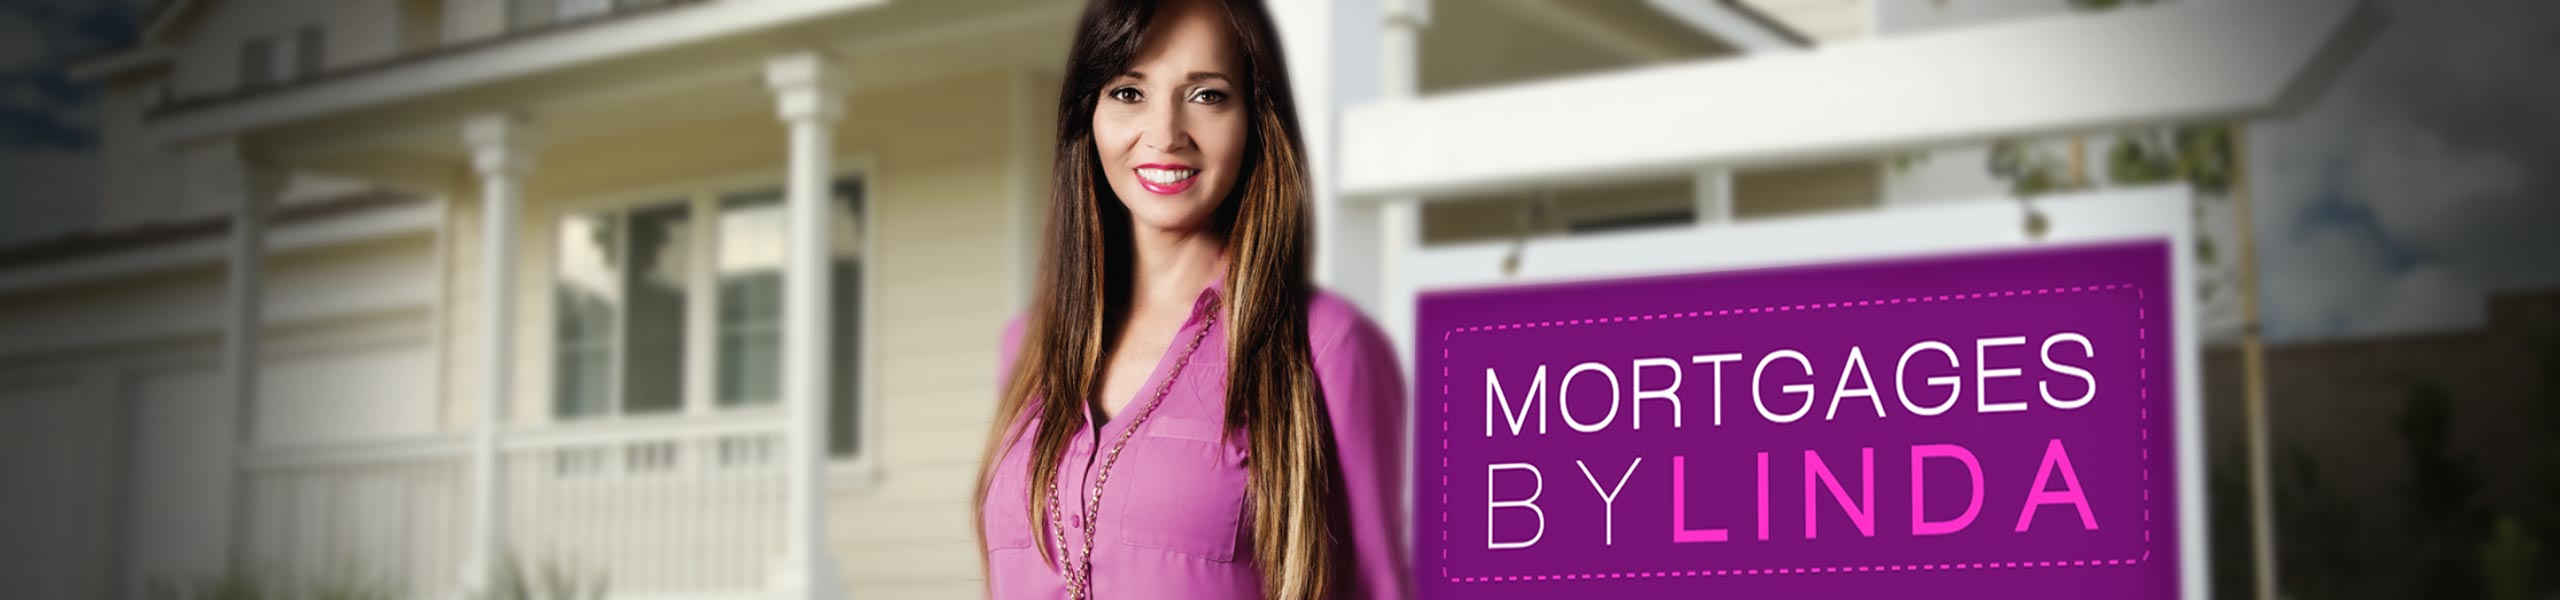 Mortgages_By_Linda_Banner_MB_02